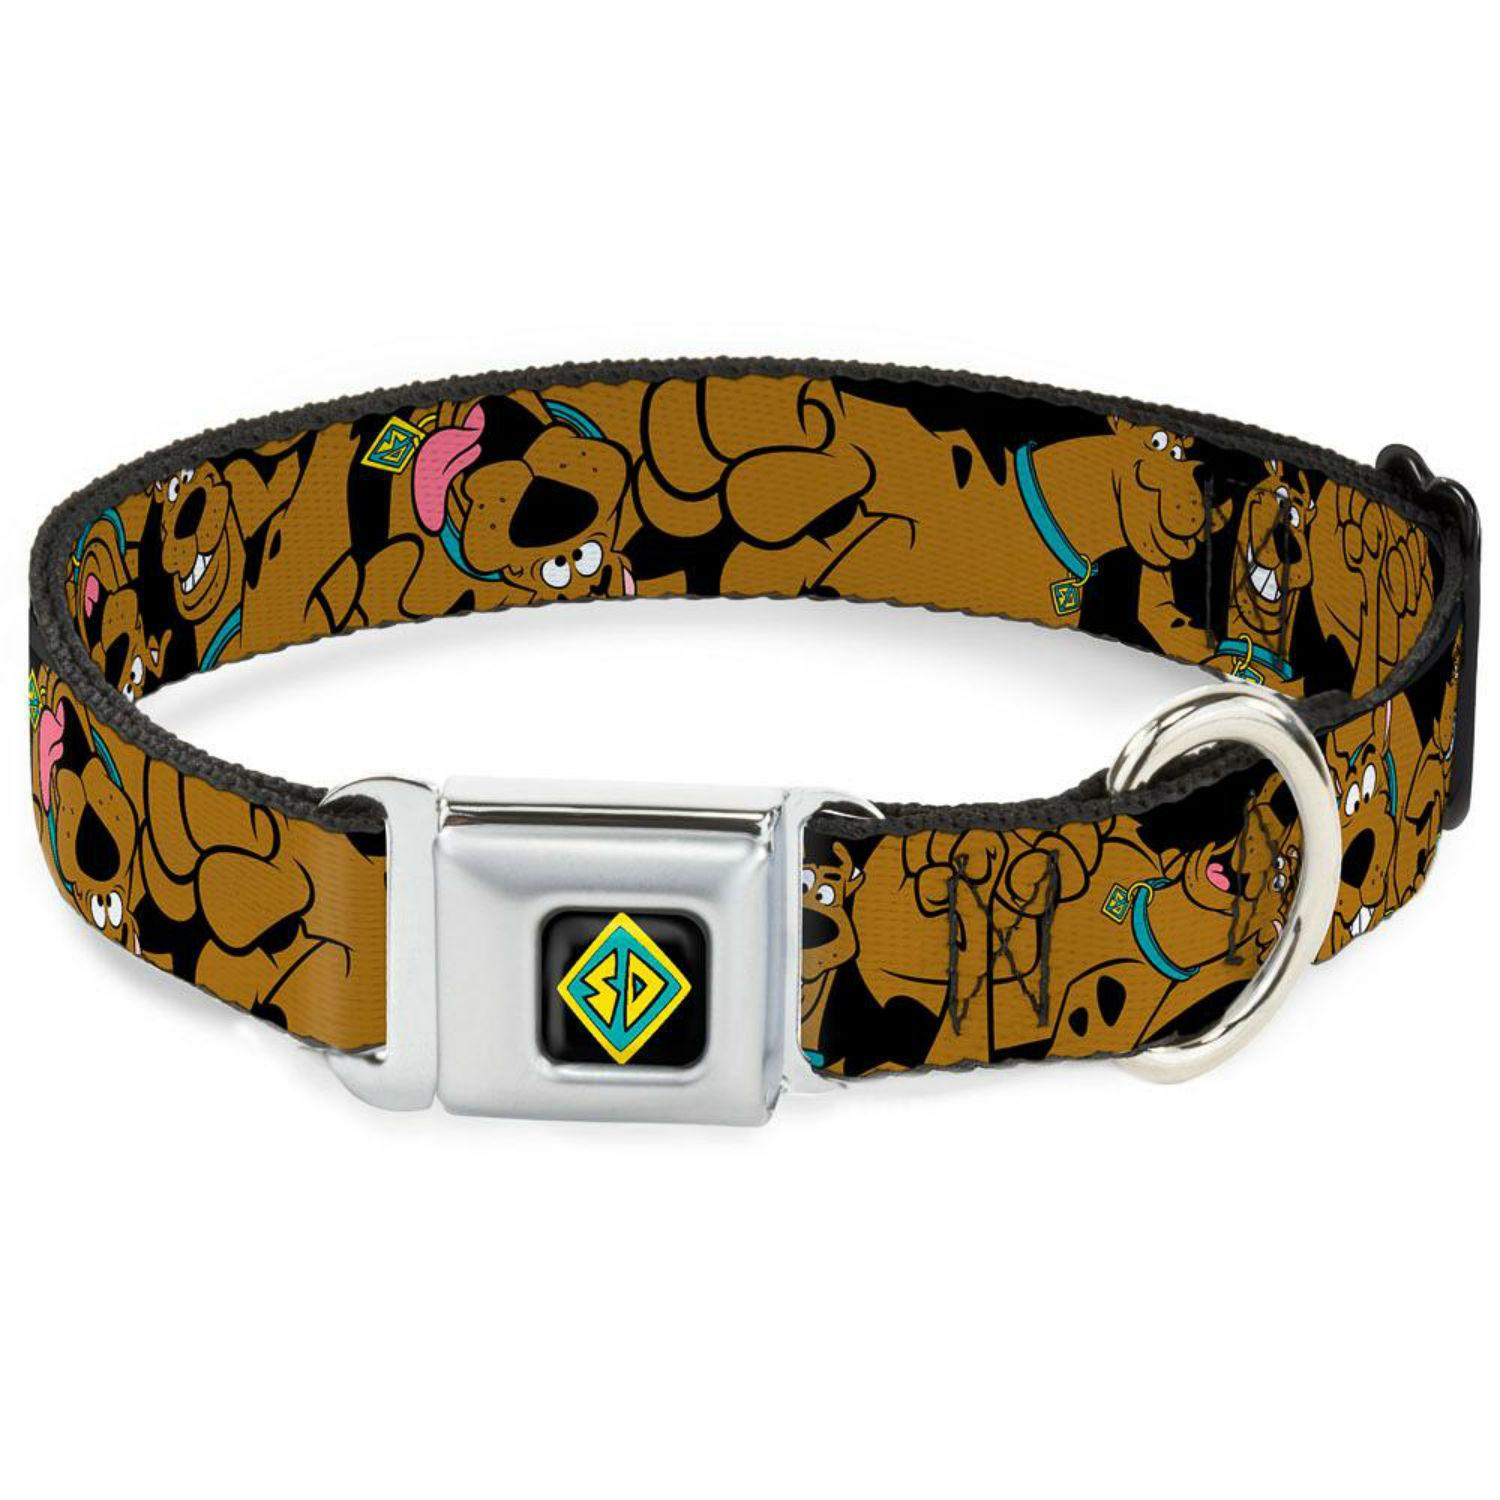 Stacked Scooby Doo Seatbelt Buckle Dog Collar by Buckle-Down